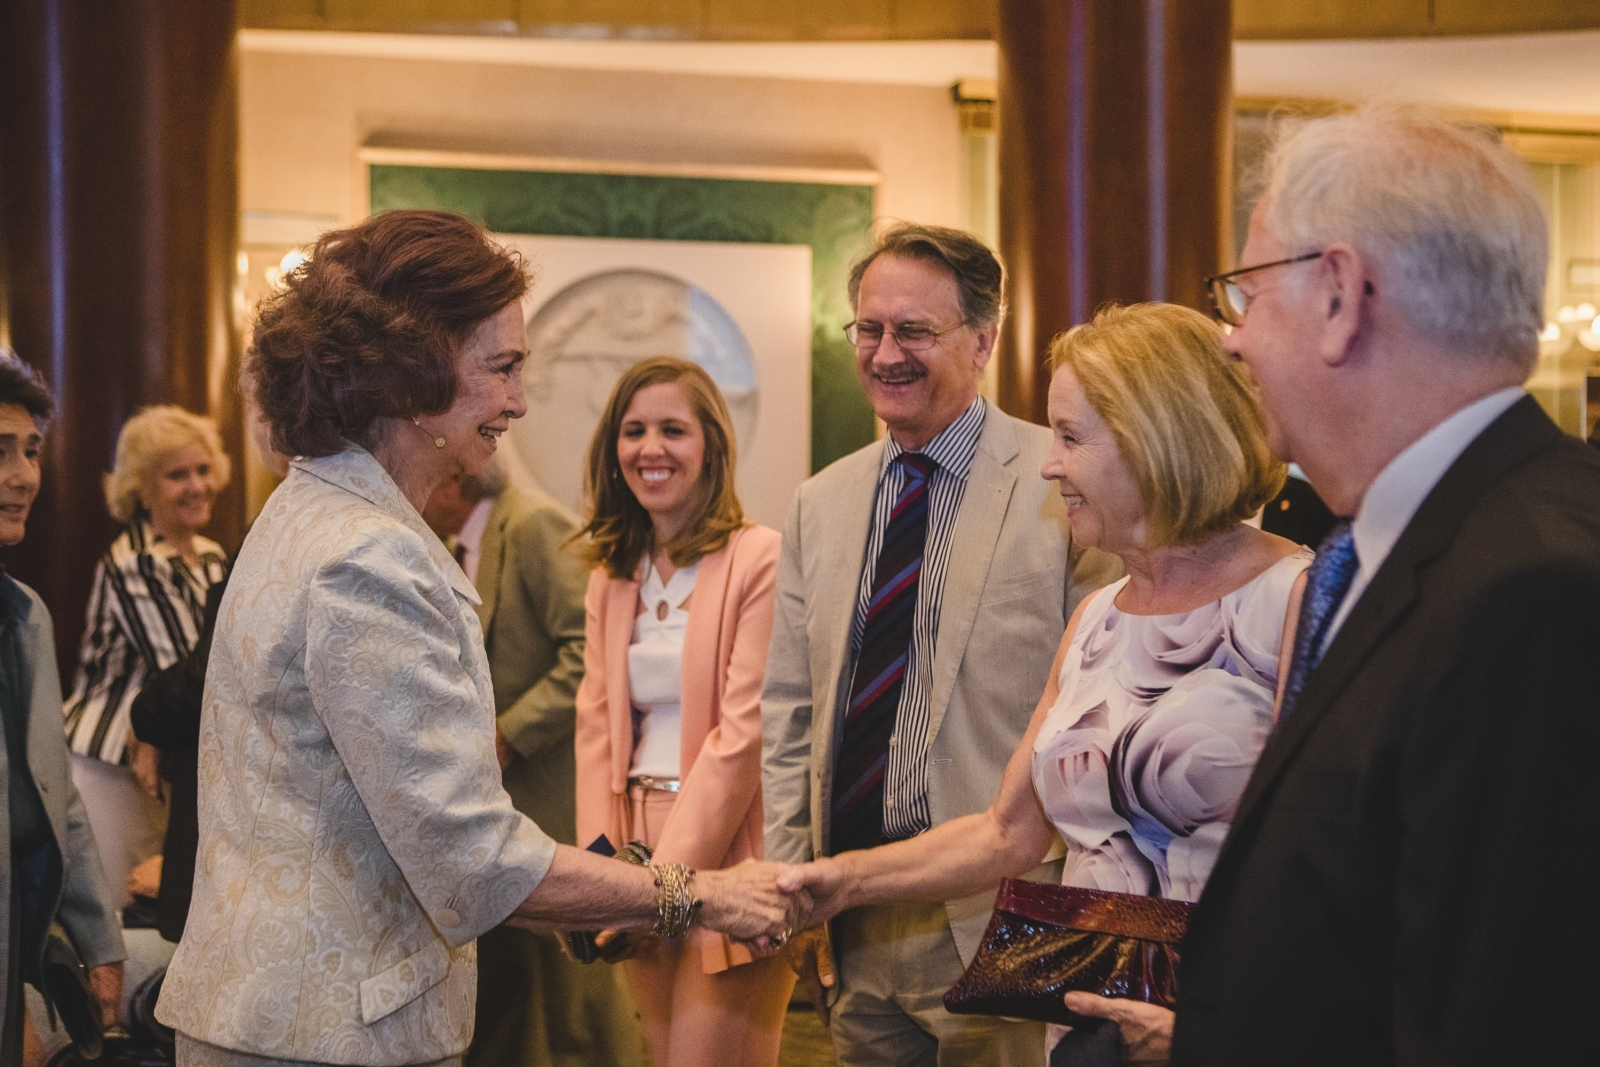 Queen Sofia of Spain being introduced to Virginia and myself at the Reina Sofia School of Music in Madrid